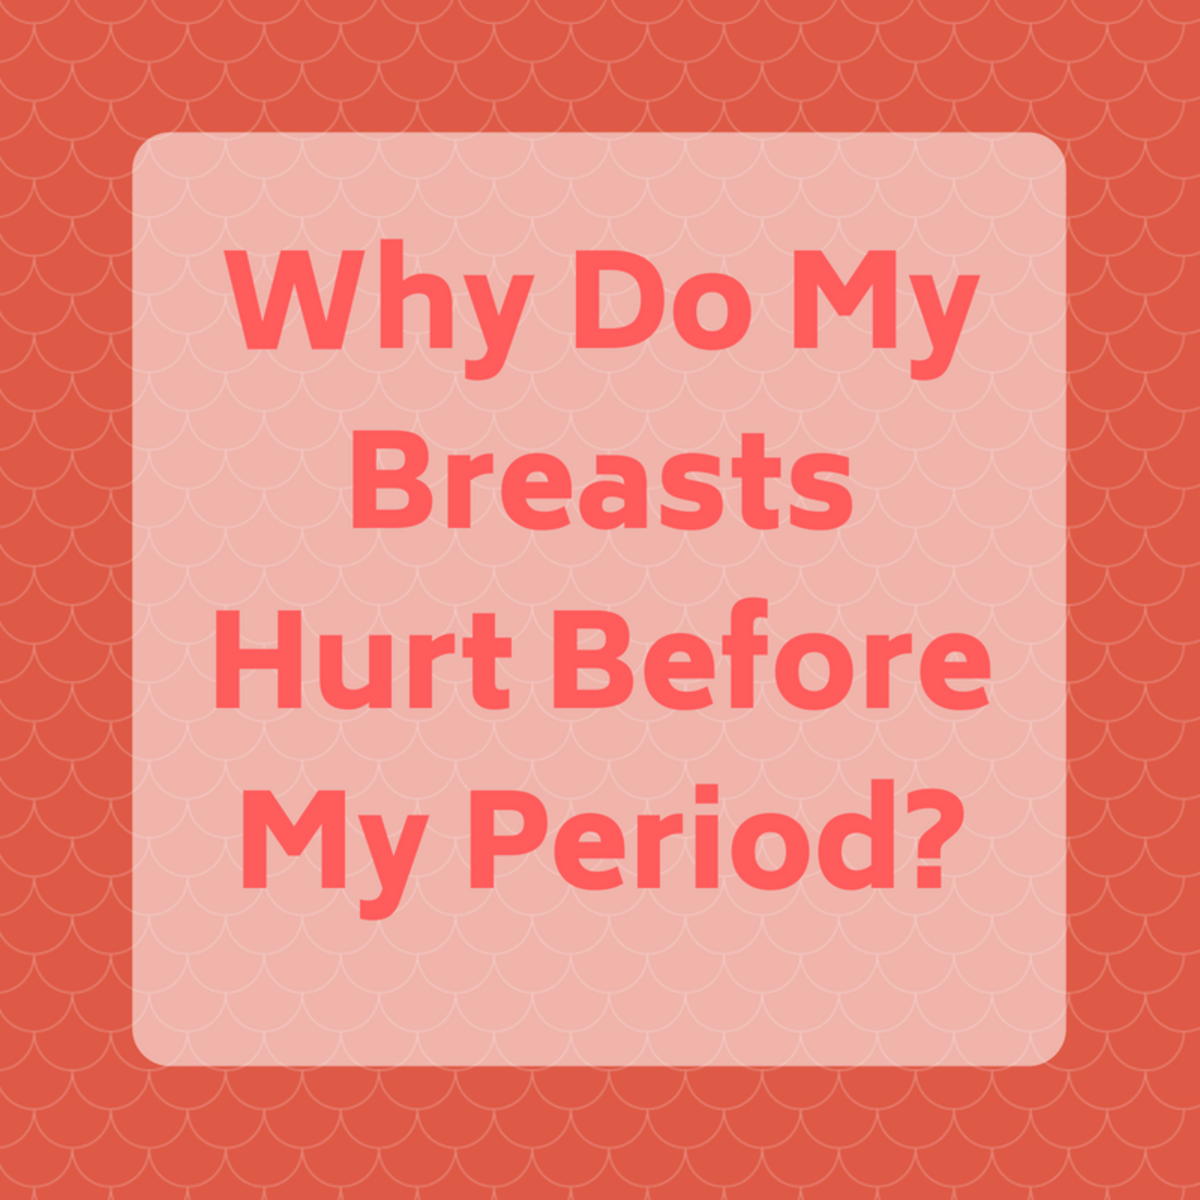 Why Do My Breasts Hurt During PMS and What Can I Do About It?